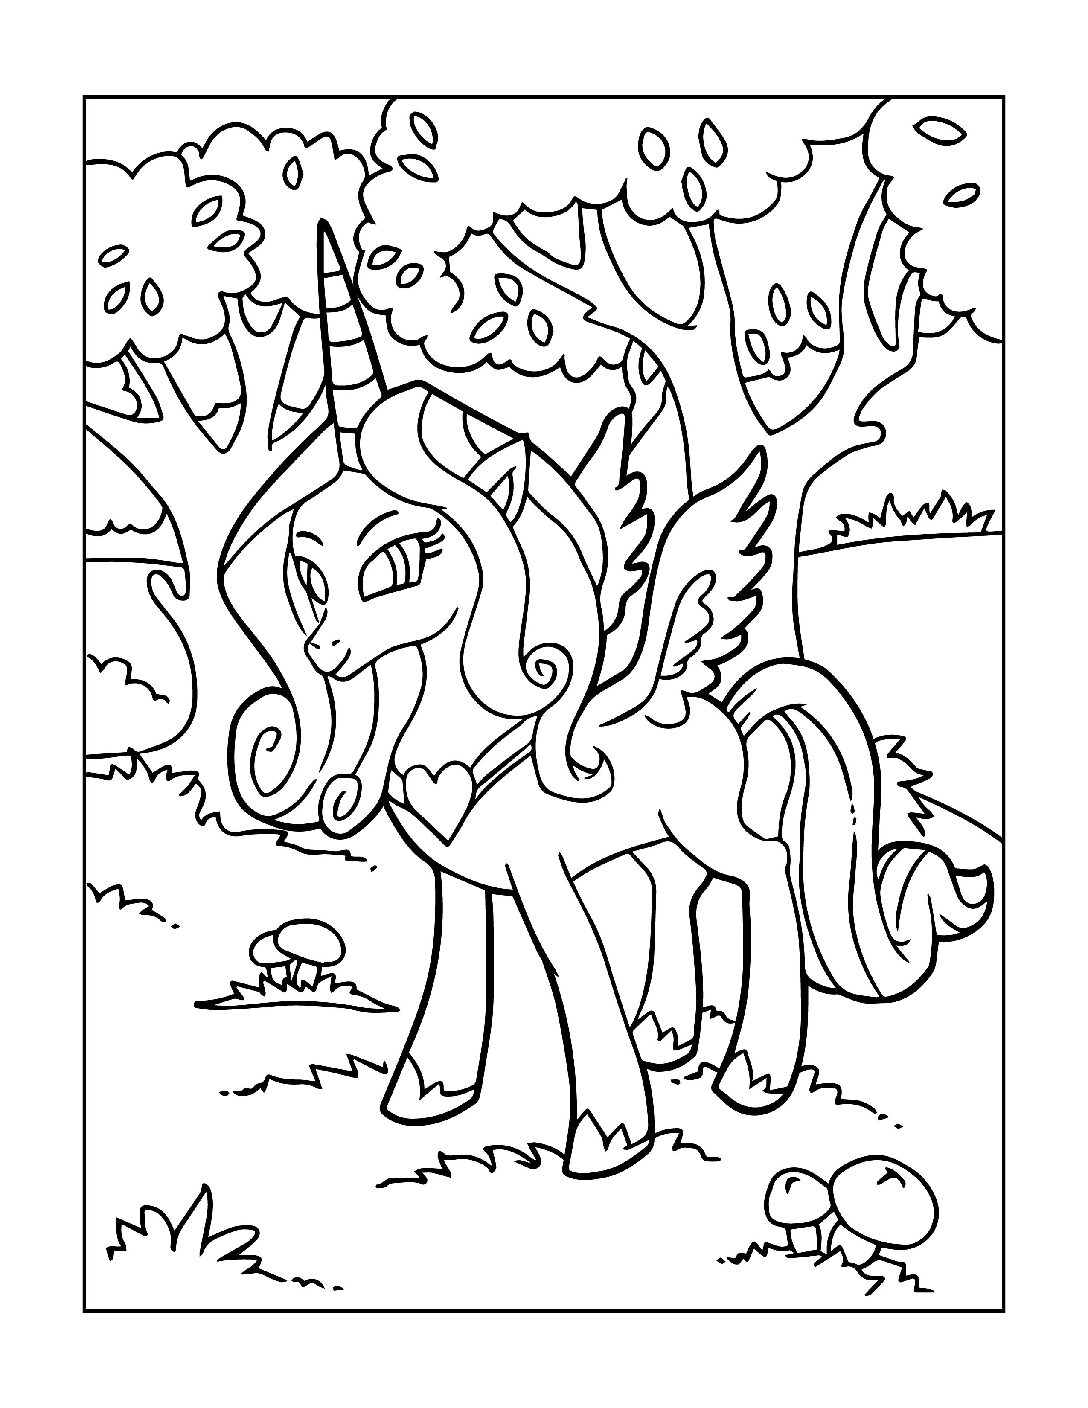 Coloring-Pages-Unicorns-14-pdf Free Printable Unicorn Colouring Pages